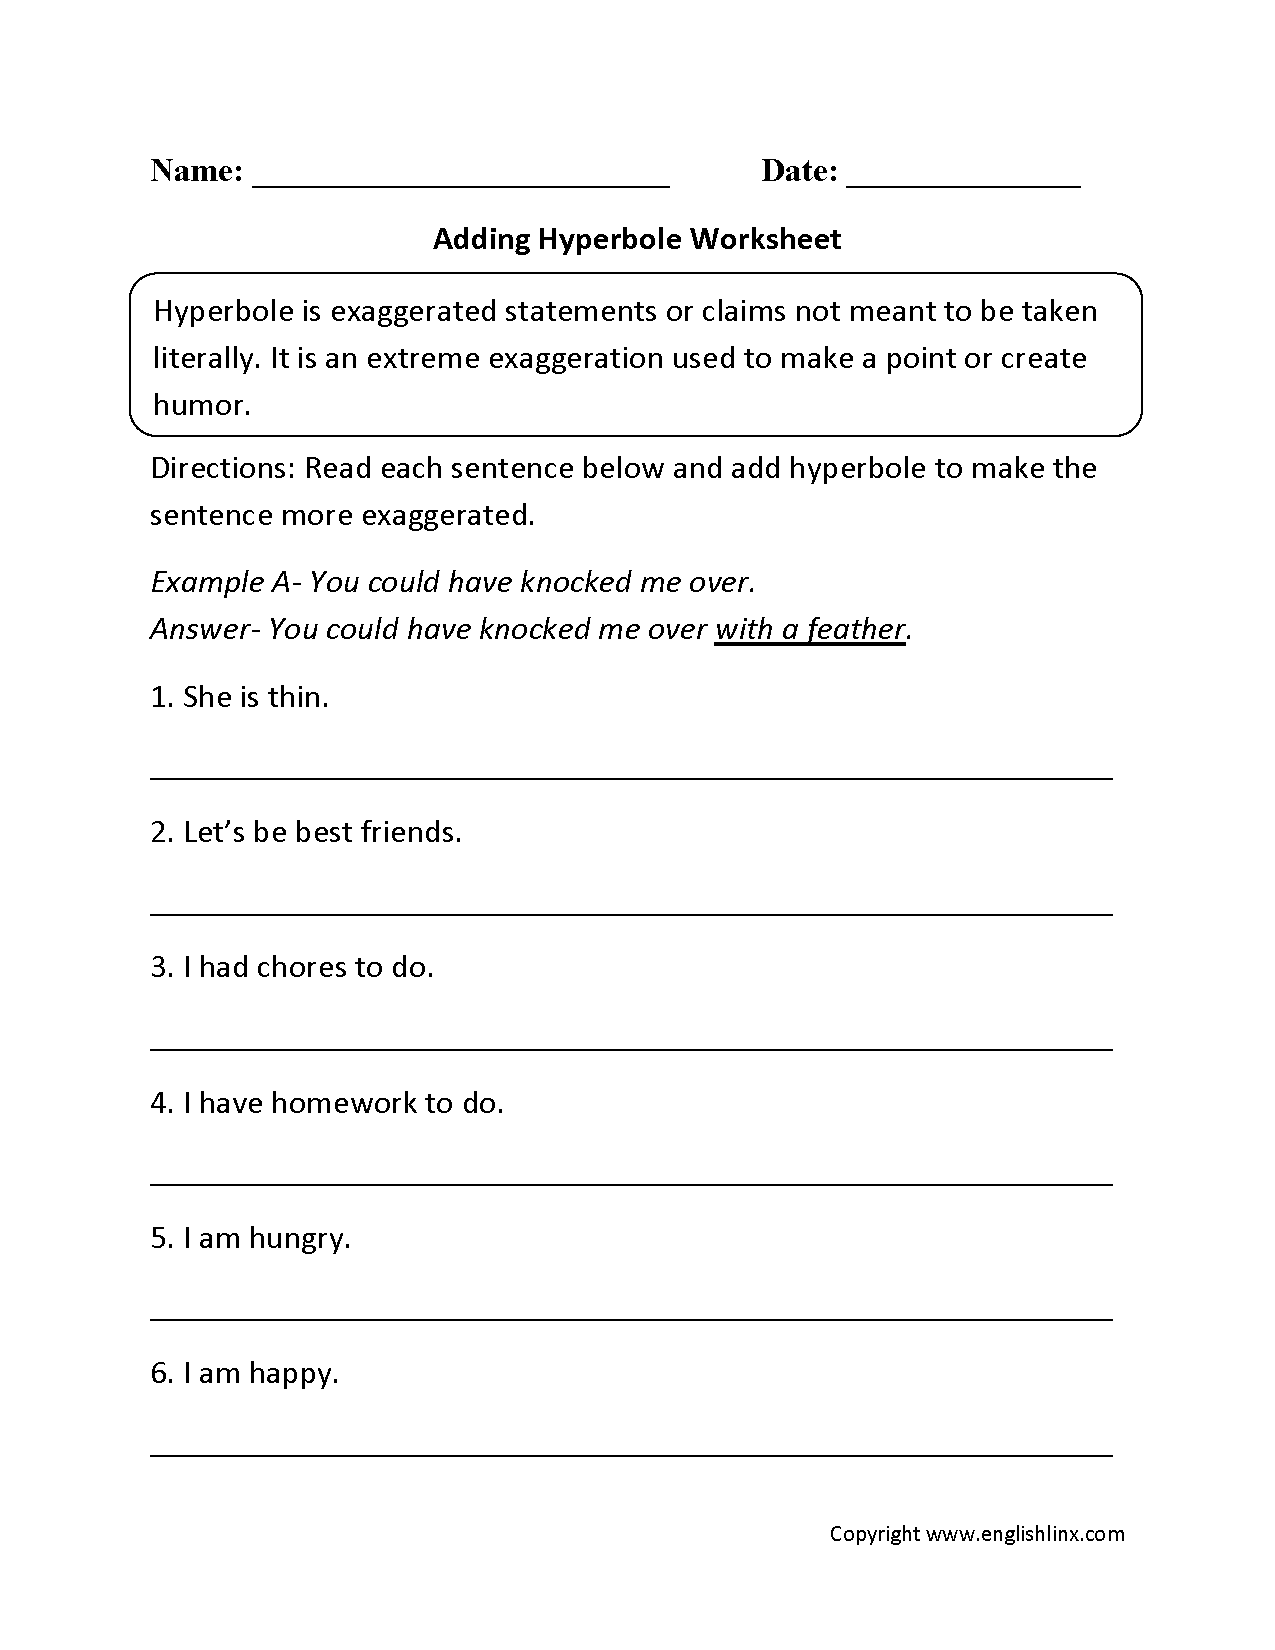 Worksheets Figures Of Speech Worksheet figurative language worksheets hyperbole worksheets